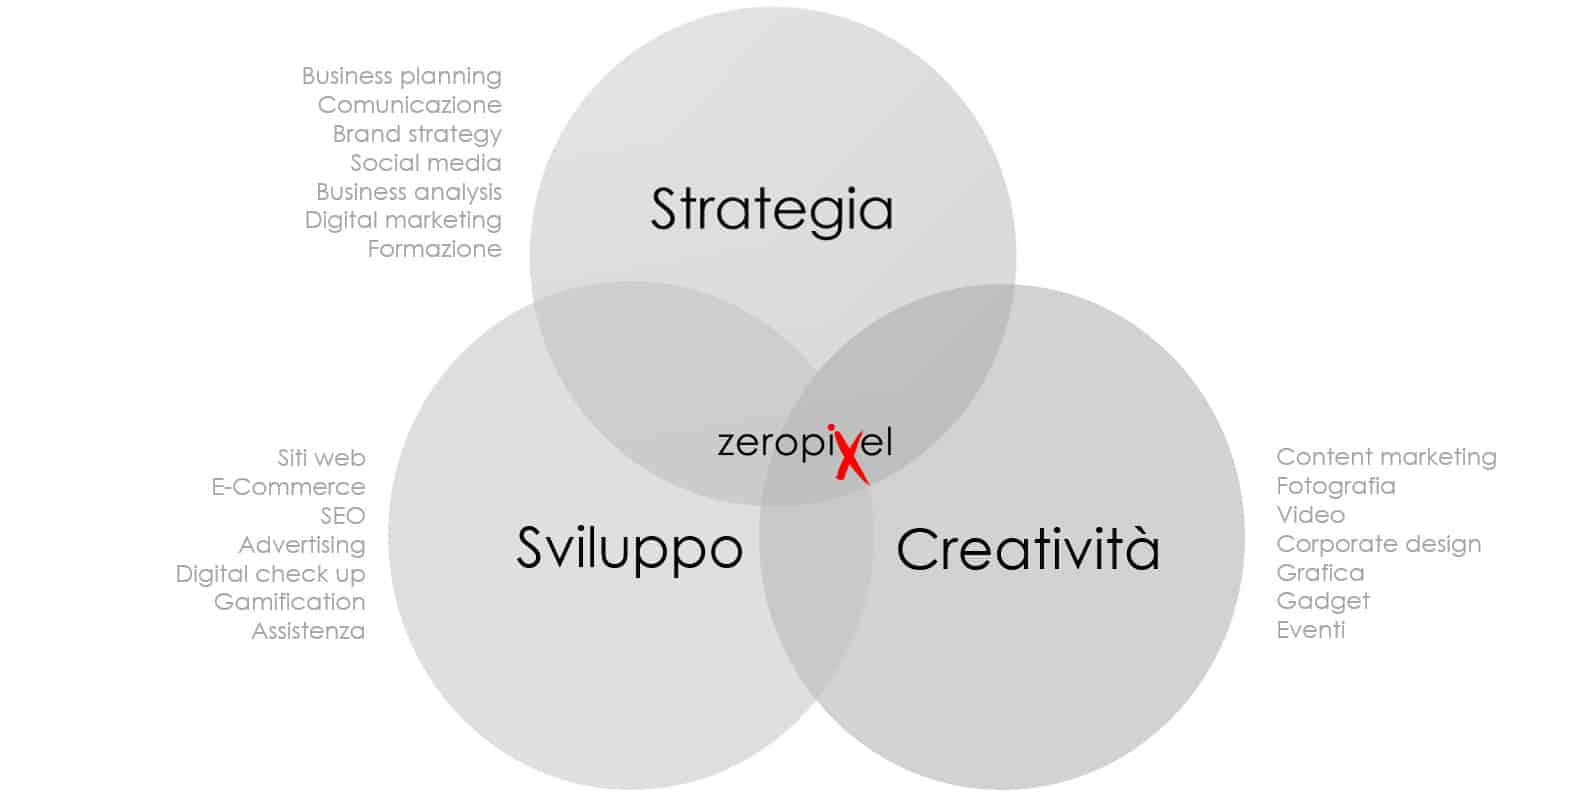 Development Strategy and Creativity in Zero Pixel